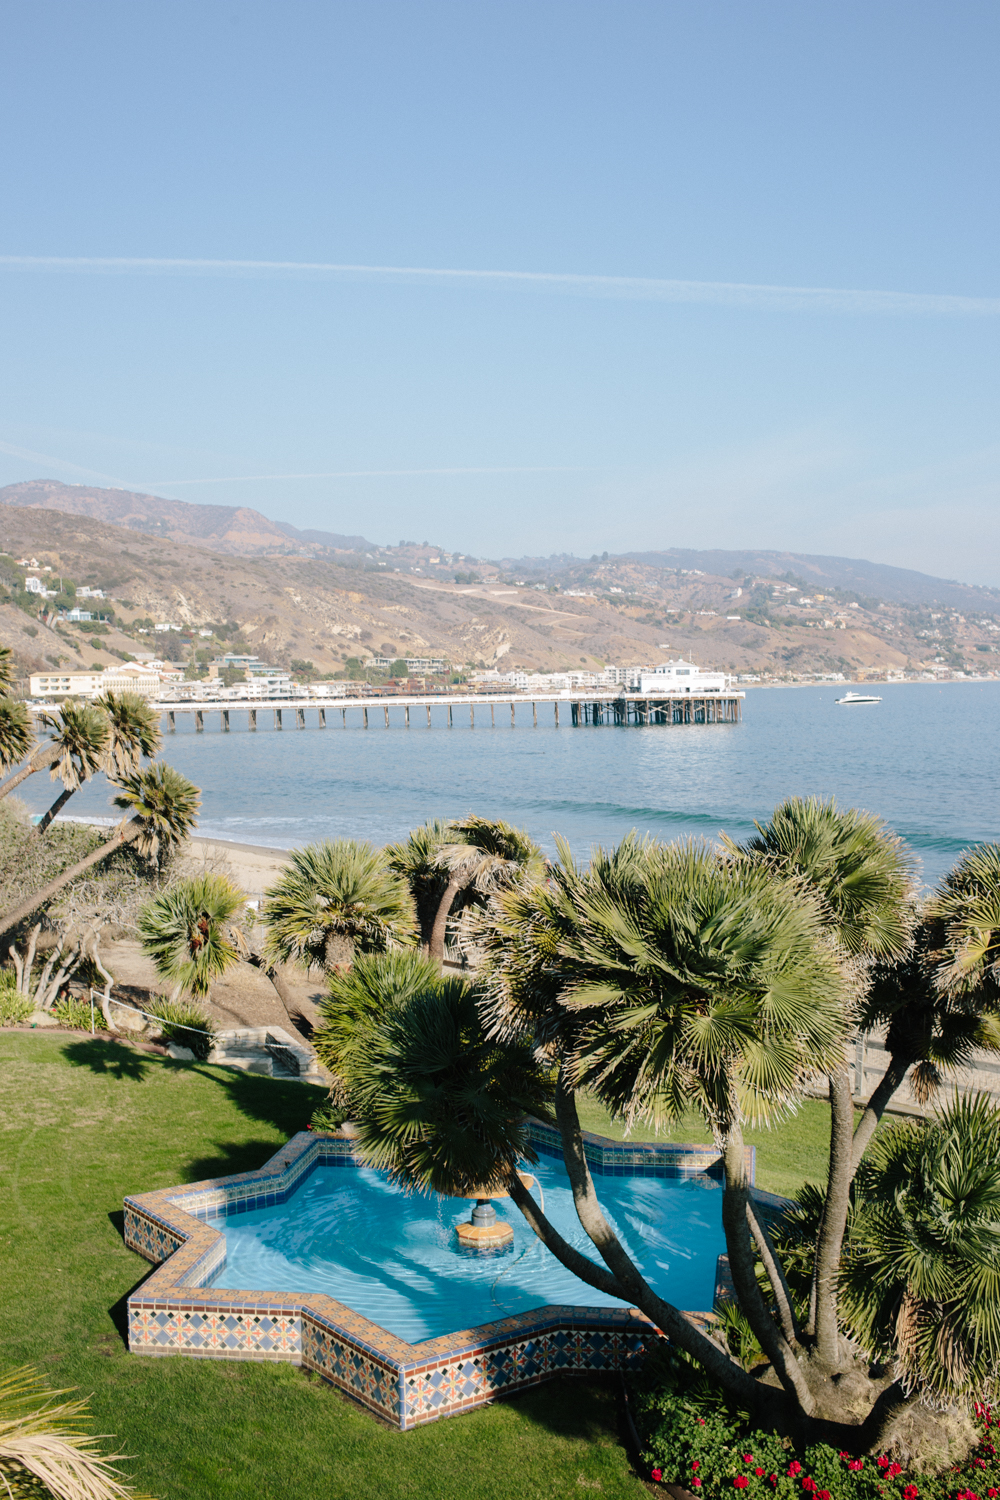 View of Malibu Pier from the 2nd floor balcony.